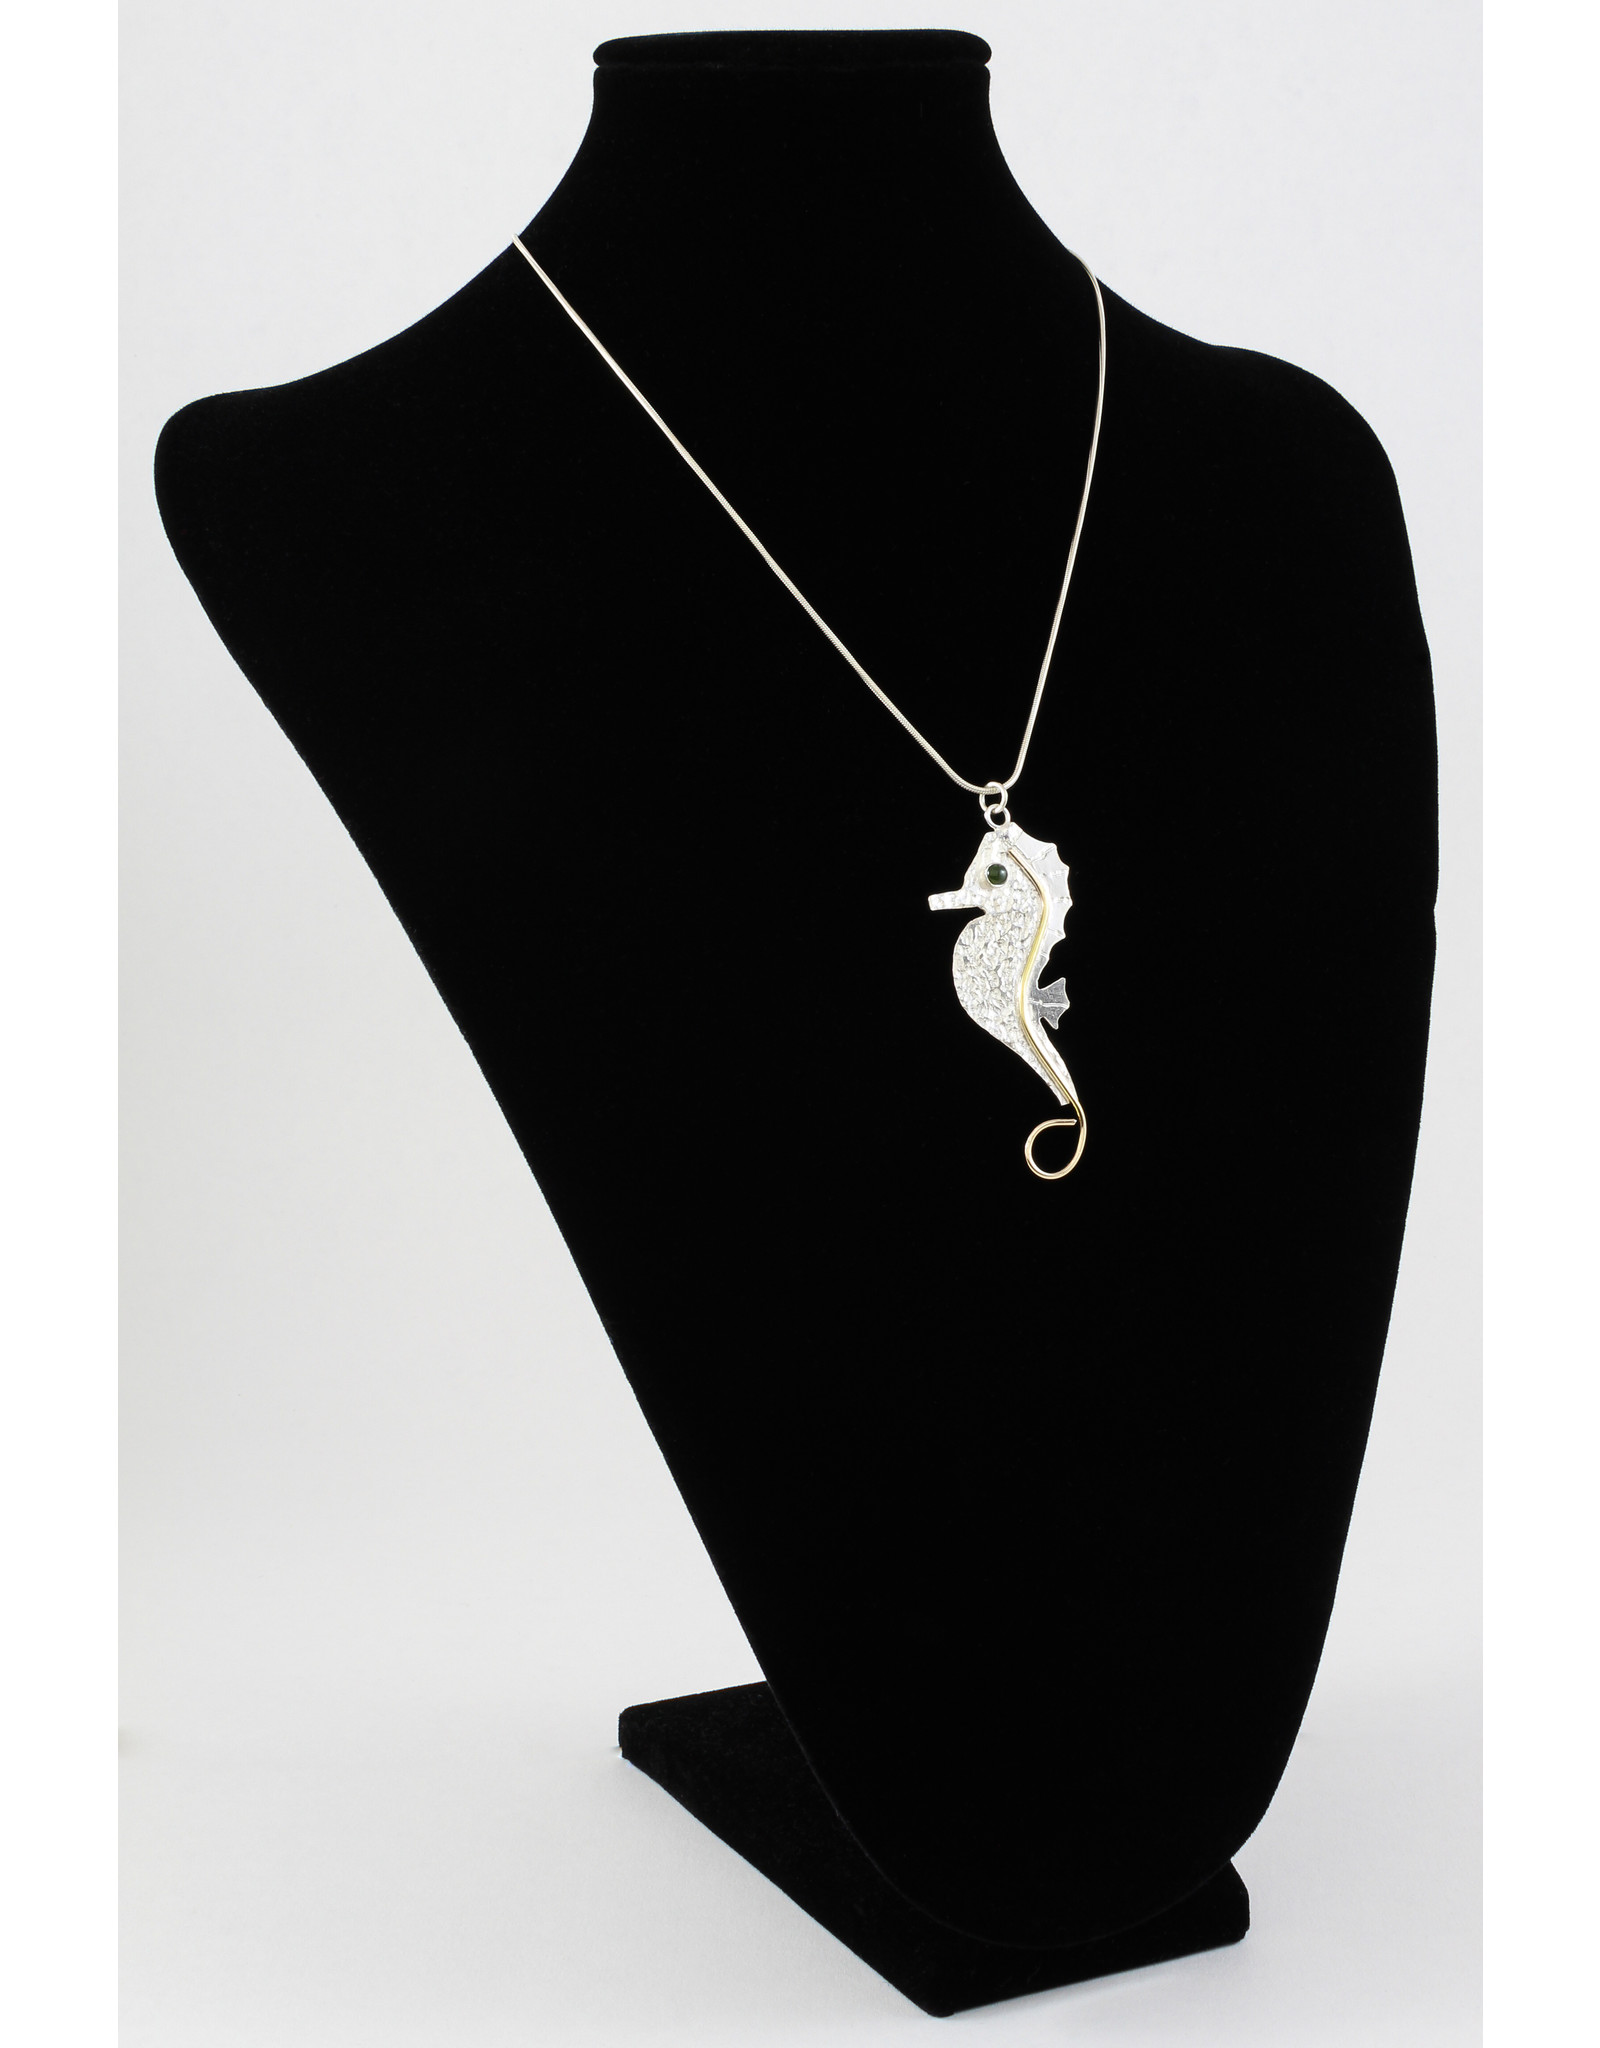 Jim & Judy MacLean Seahorse Pendant by Findings For Friends